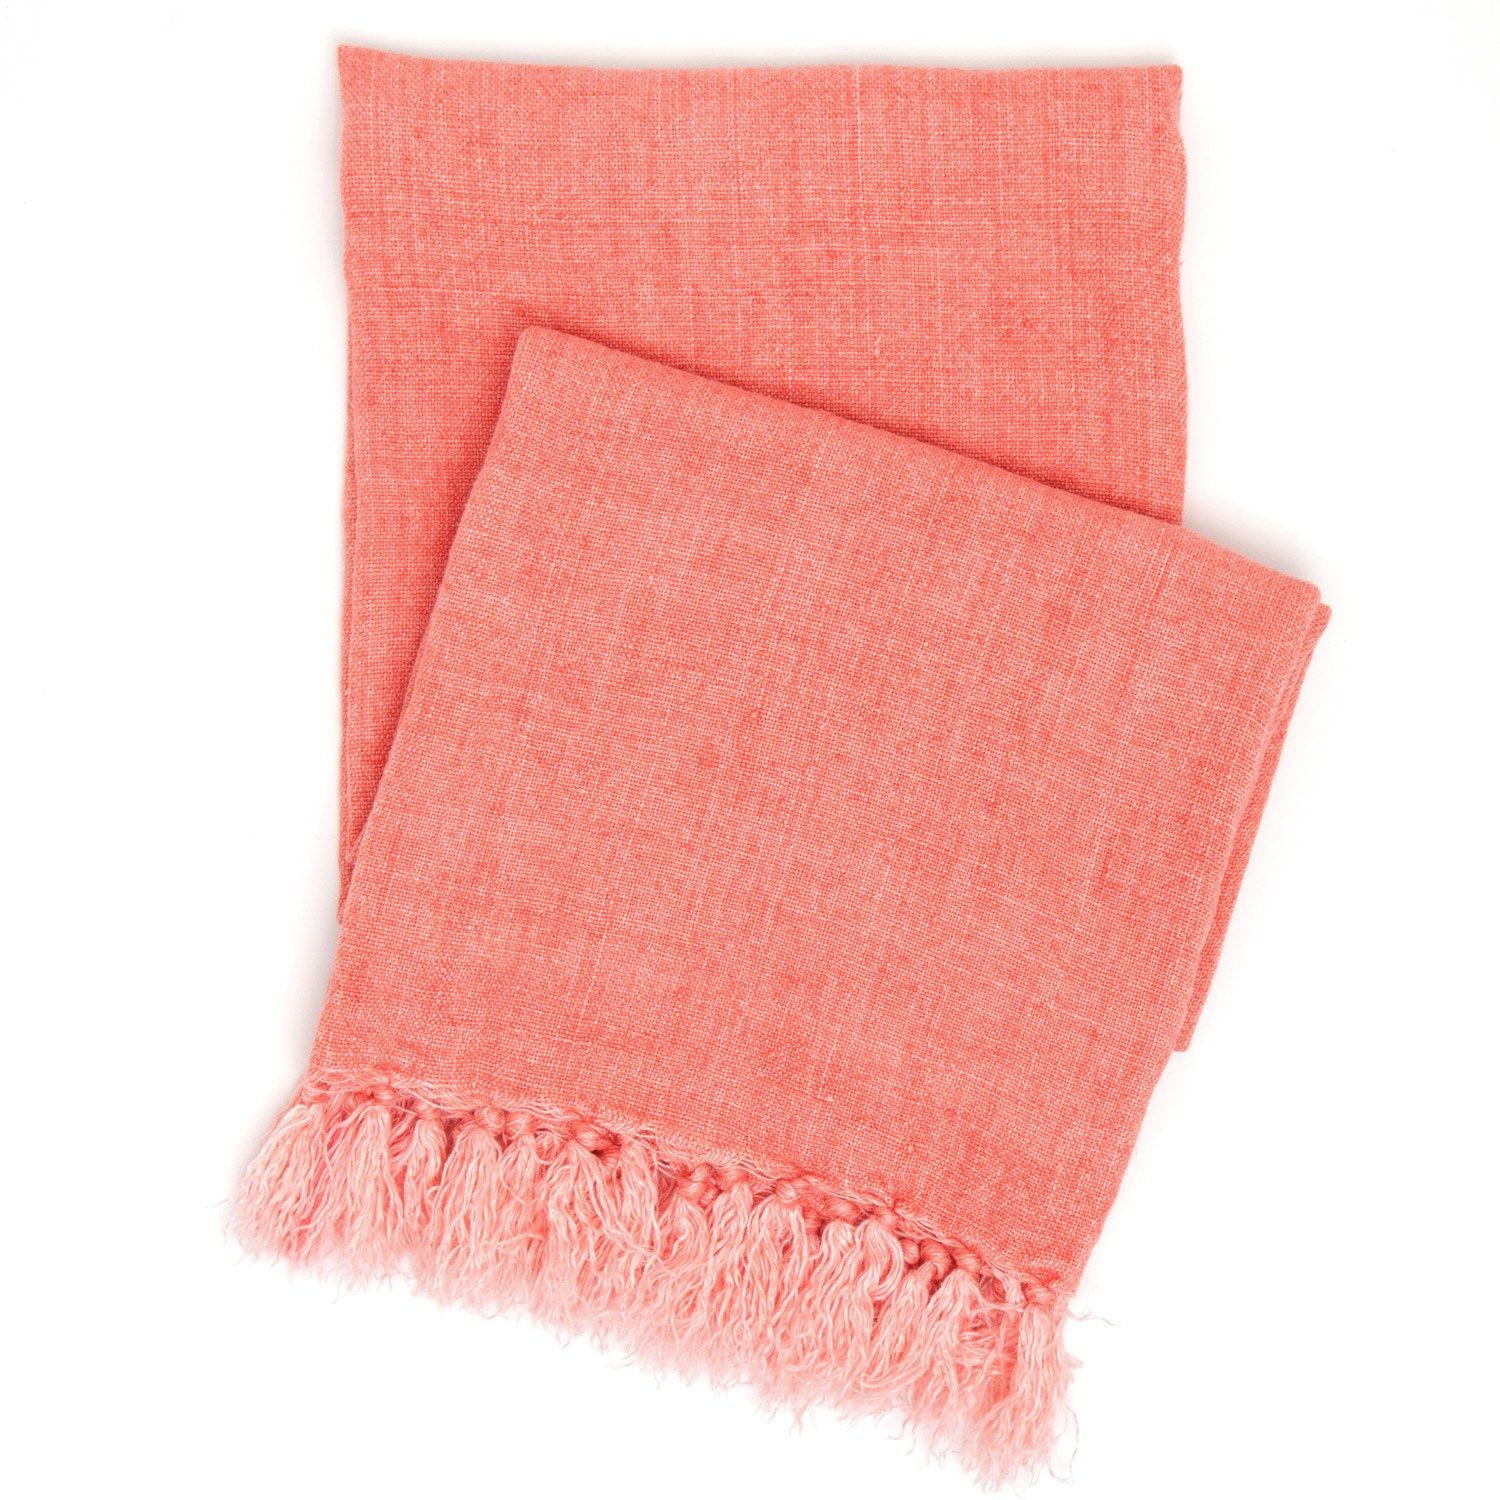 coral throw blanket - pine cone hill laundered linen coral throw blanket laylagrayce